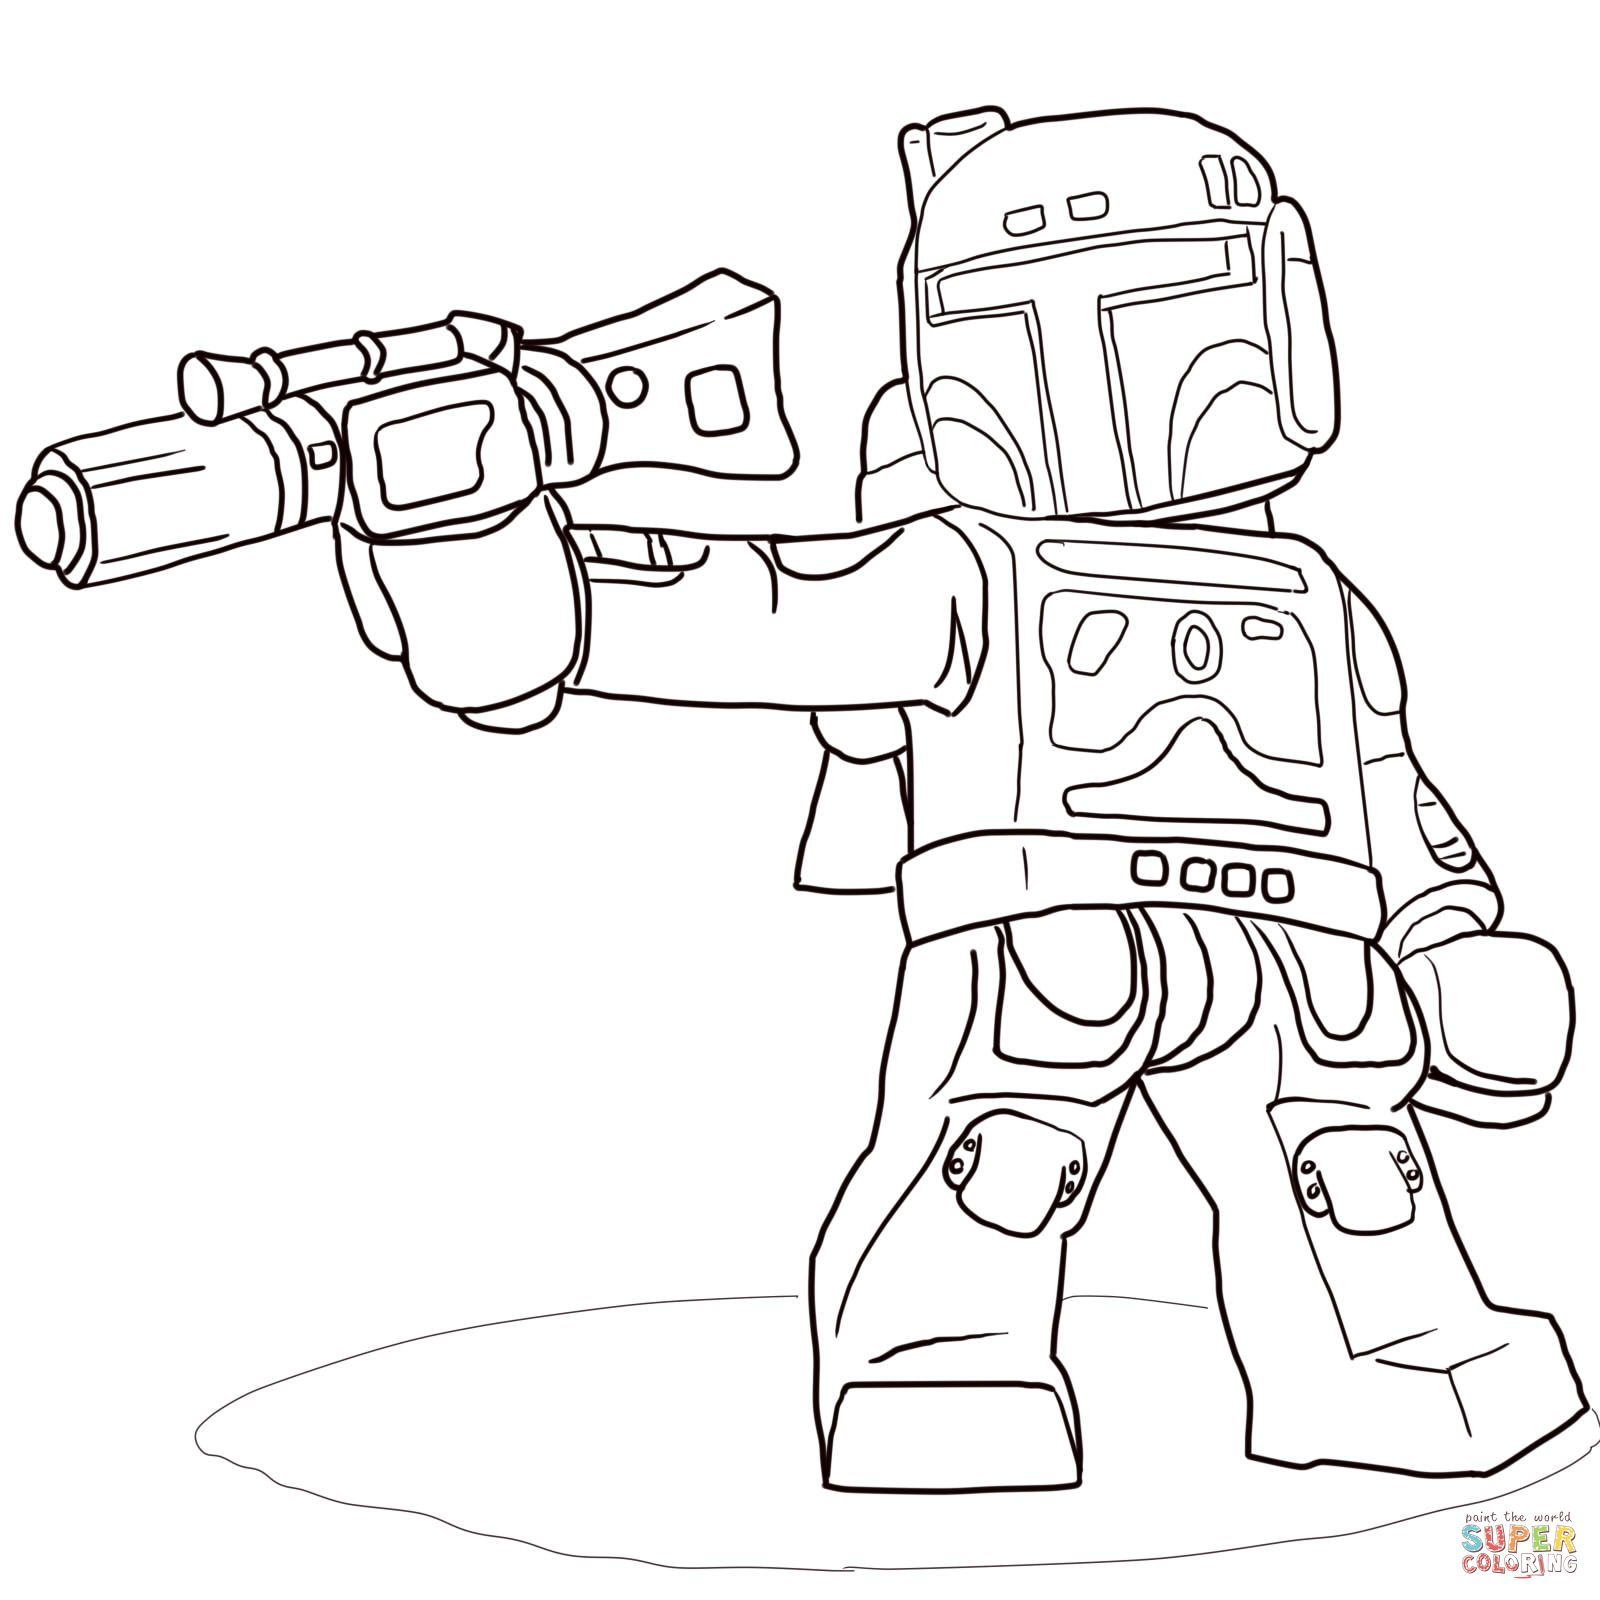 Lego Clone Trooper | Super Coloring | LineArt: Star Wars | Pinterest ...